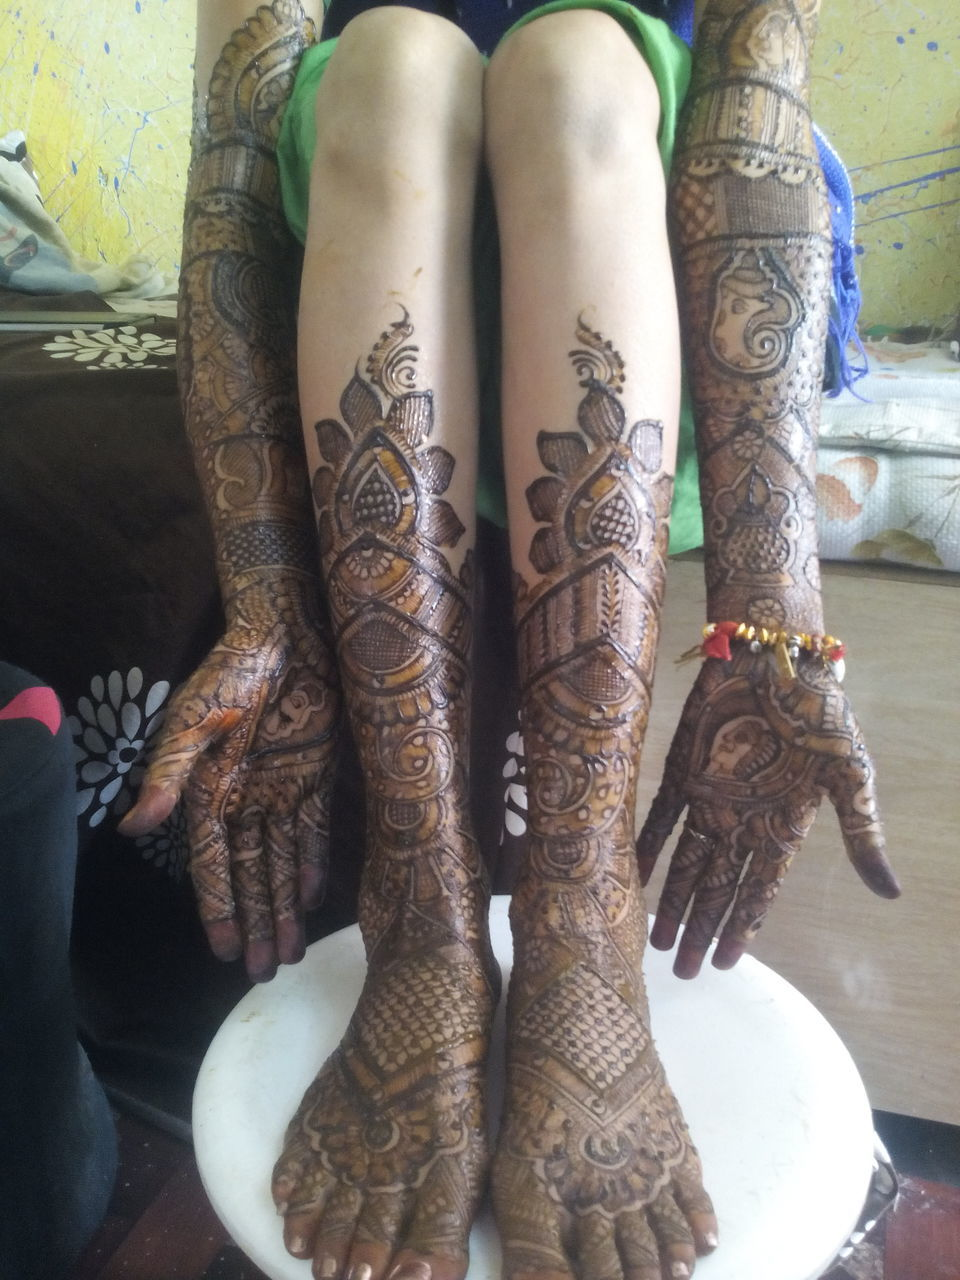 henna tattoo, art and craft, creativity, real people, design, cultures, celebration, tradition, indoors, low section, close-up, human hand, women, bride, human body part, day, one person